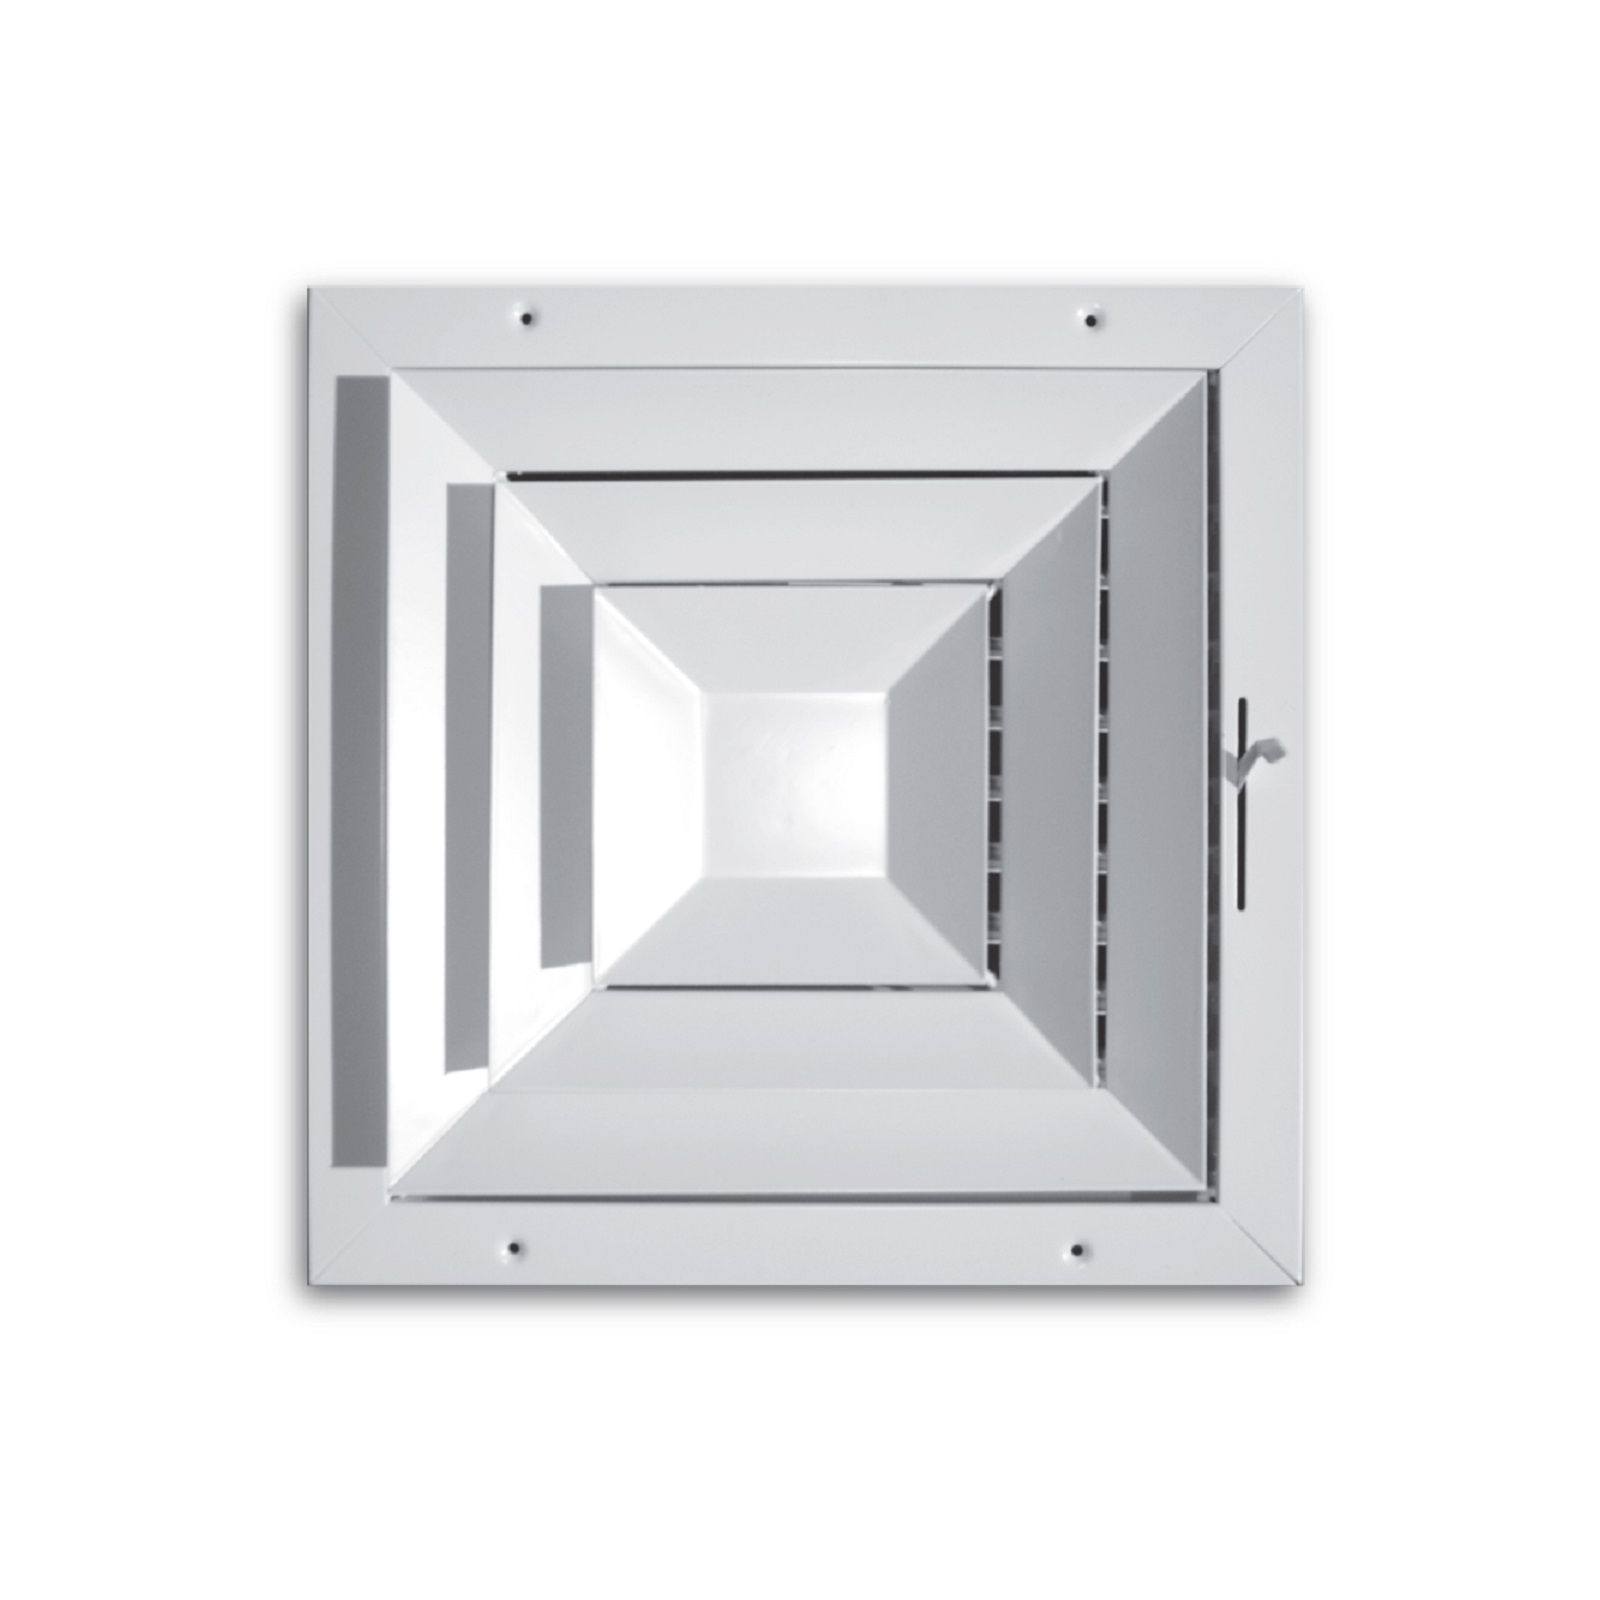 "TRUaire 560M 10X10 - High Capacity Step-Down Square Ceiling Directional Diffuser, White, 10"" X 10"""